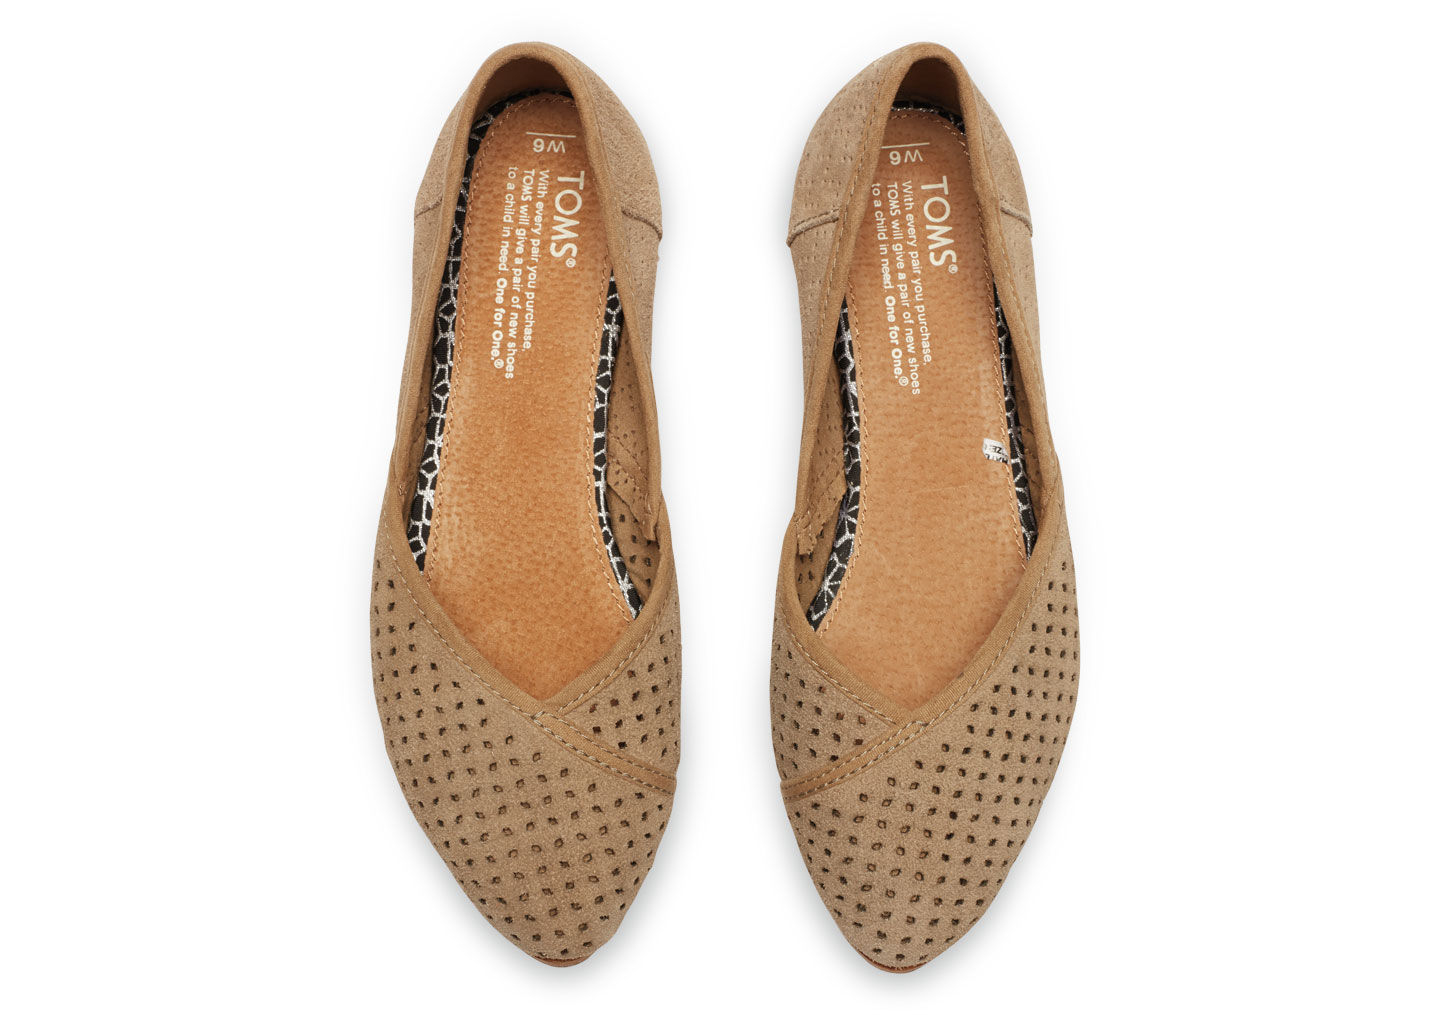 0510a1d39 TOMS Taupe Suede Perforated Women's Jutti Flats in Brown - Lyst